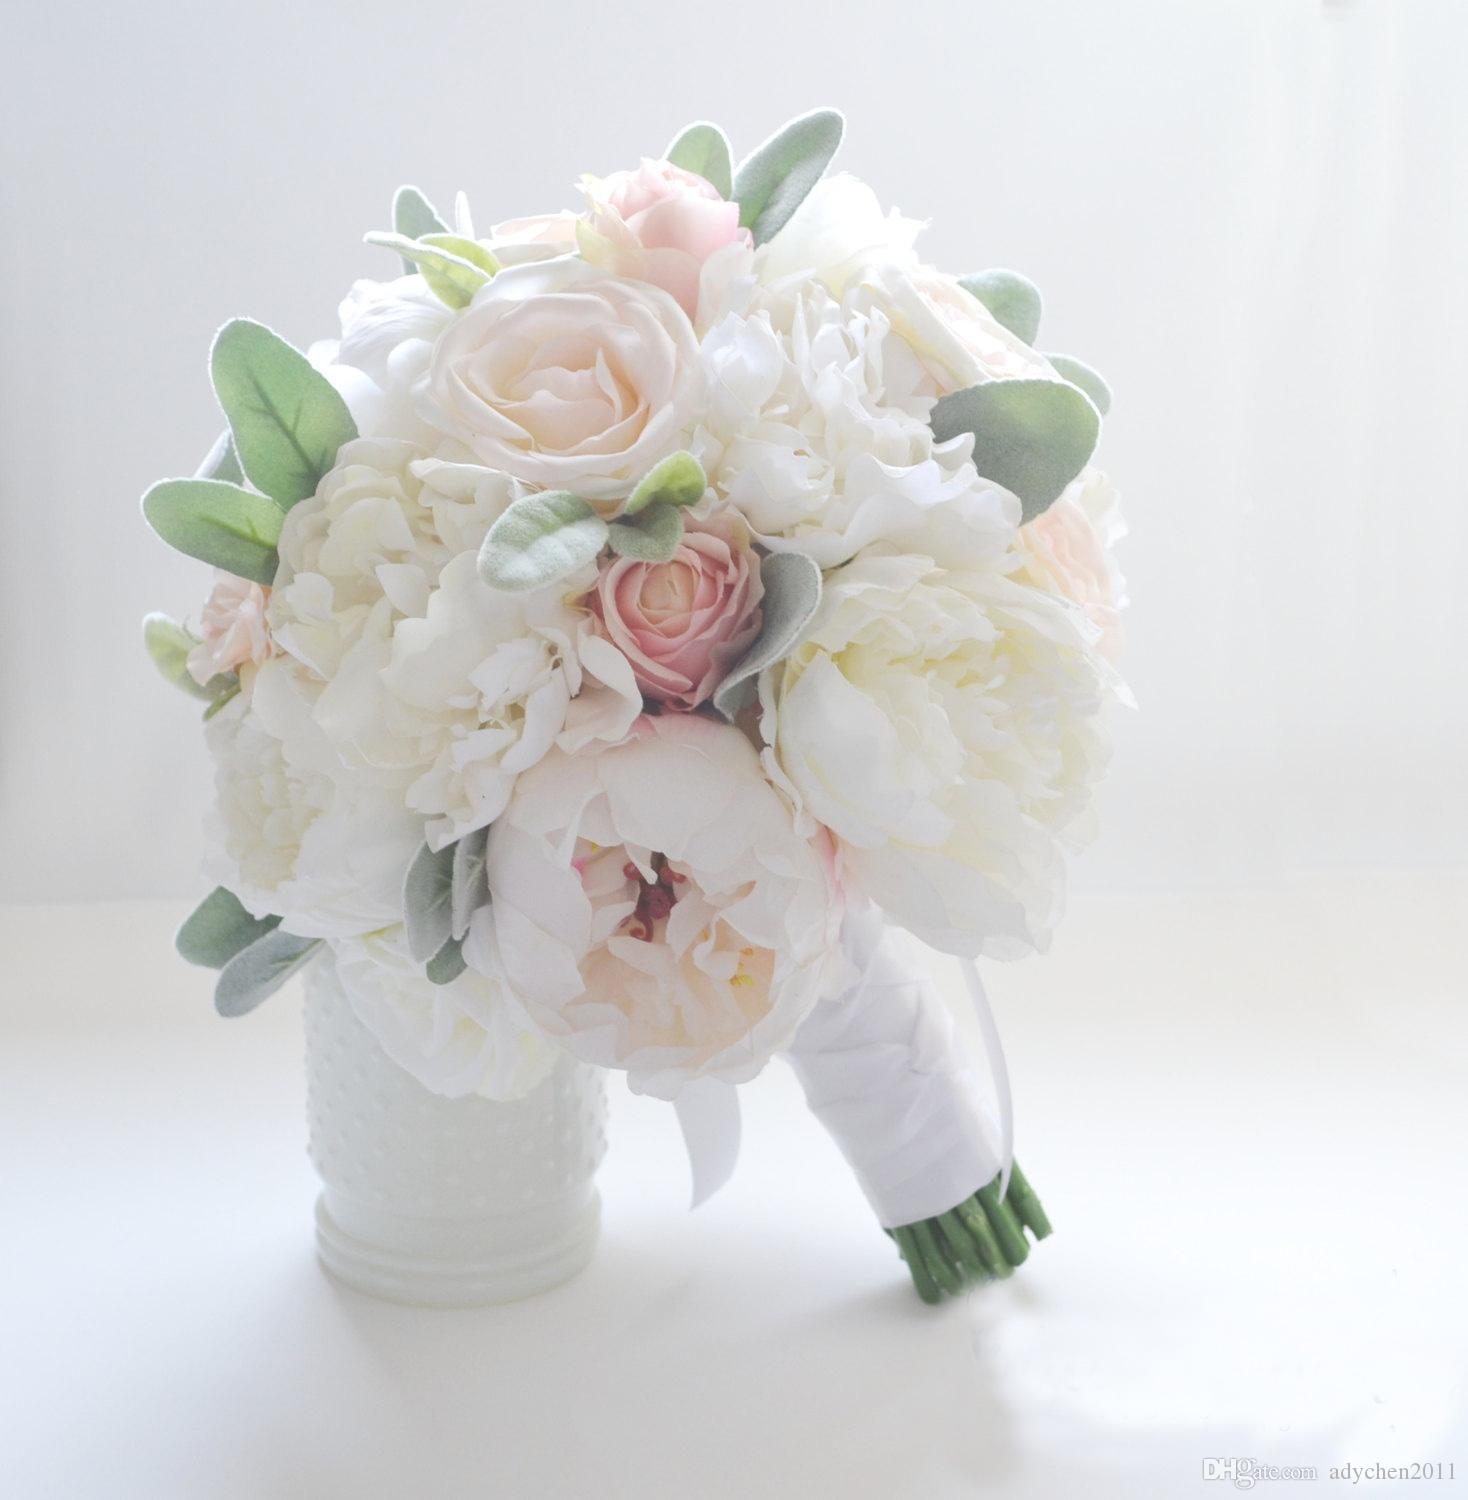 Ivory silk flowers peonies wedding bouquet roses for sale bridal ivory silk flowers peonies wedding bouquet roses for sale bridal bouquet bridesmaid holding flowers decoration rustic handmade custom made beautiful flower izmirmasajfo